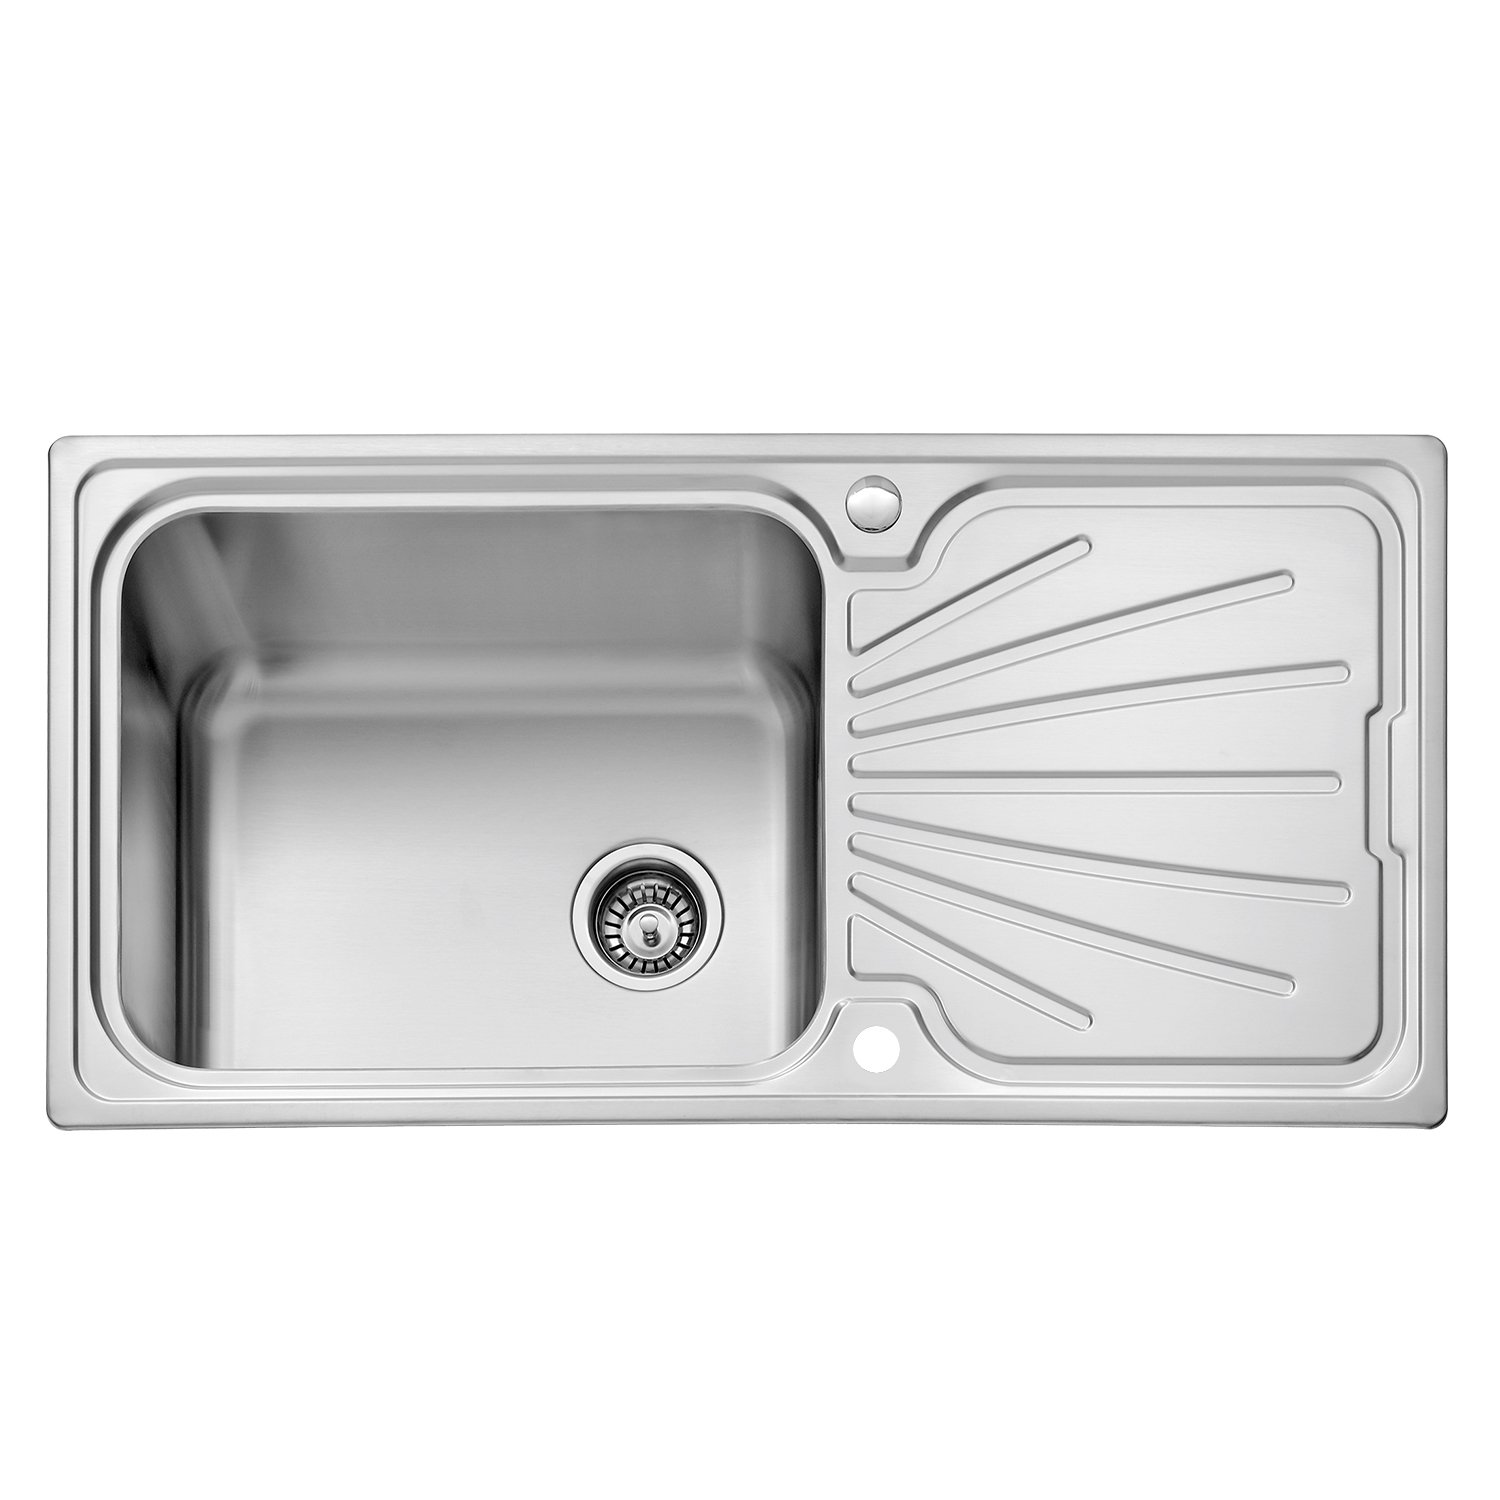 Jass ferry kitchen sink stainless steel large bowl welding style inset reversible drainer strainer waste pipes clips 1000 x 500 mm 10 years warranty